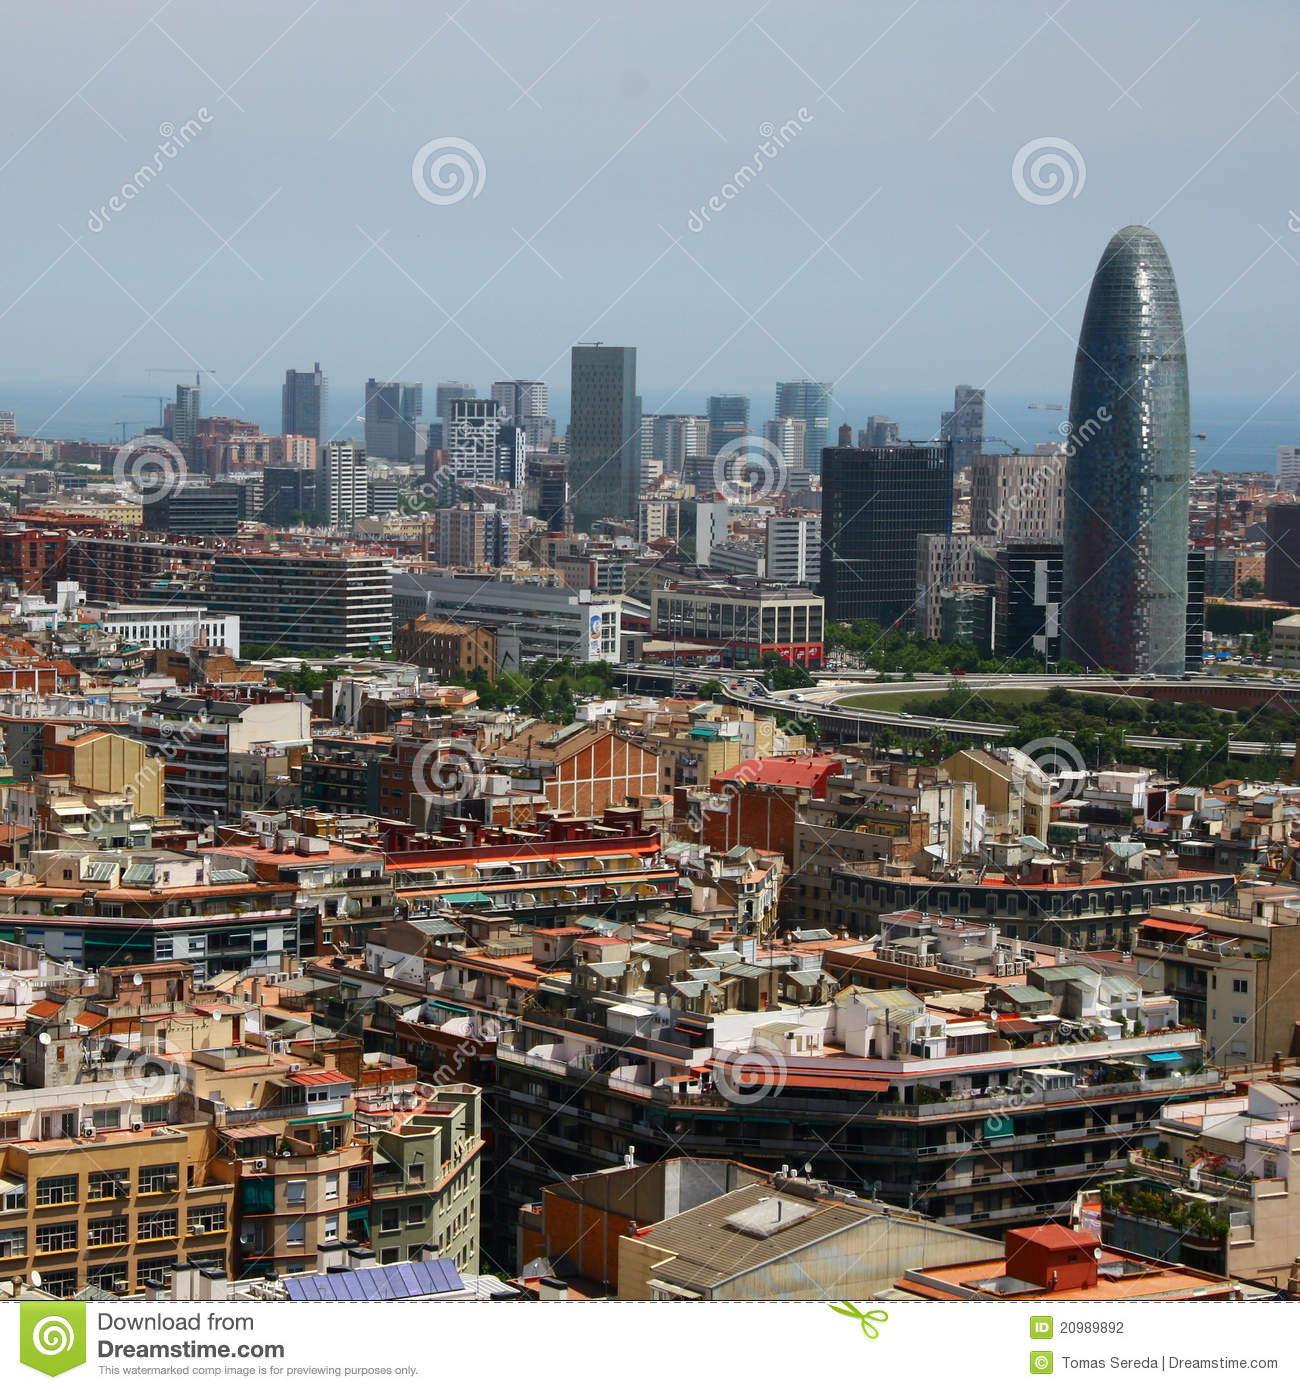 Birds Eye View Barcelona: Bird's Eye View Of The Agbar Tower In Barcelona Stock